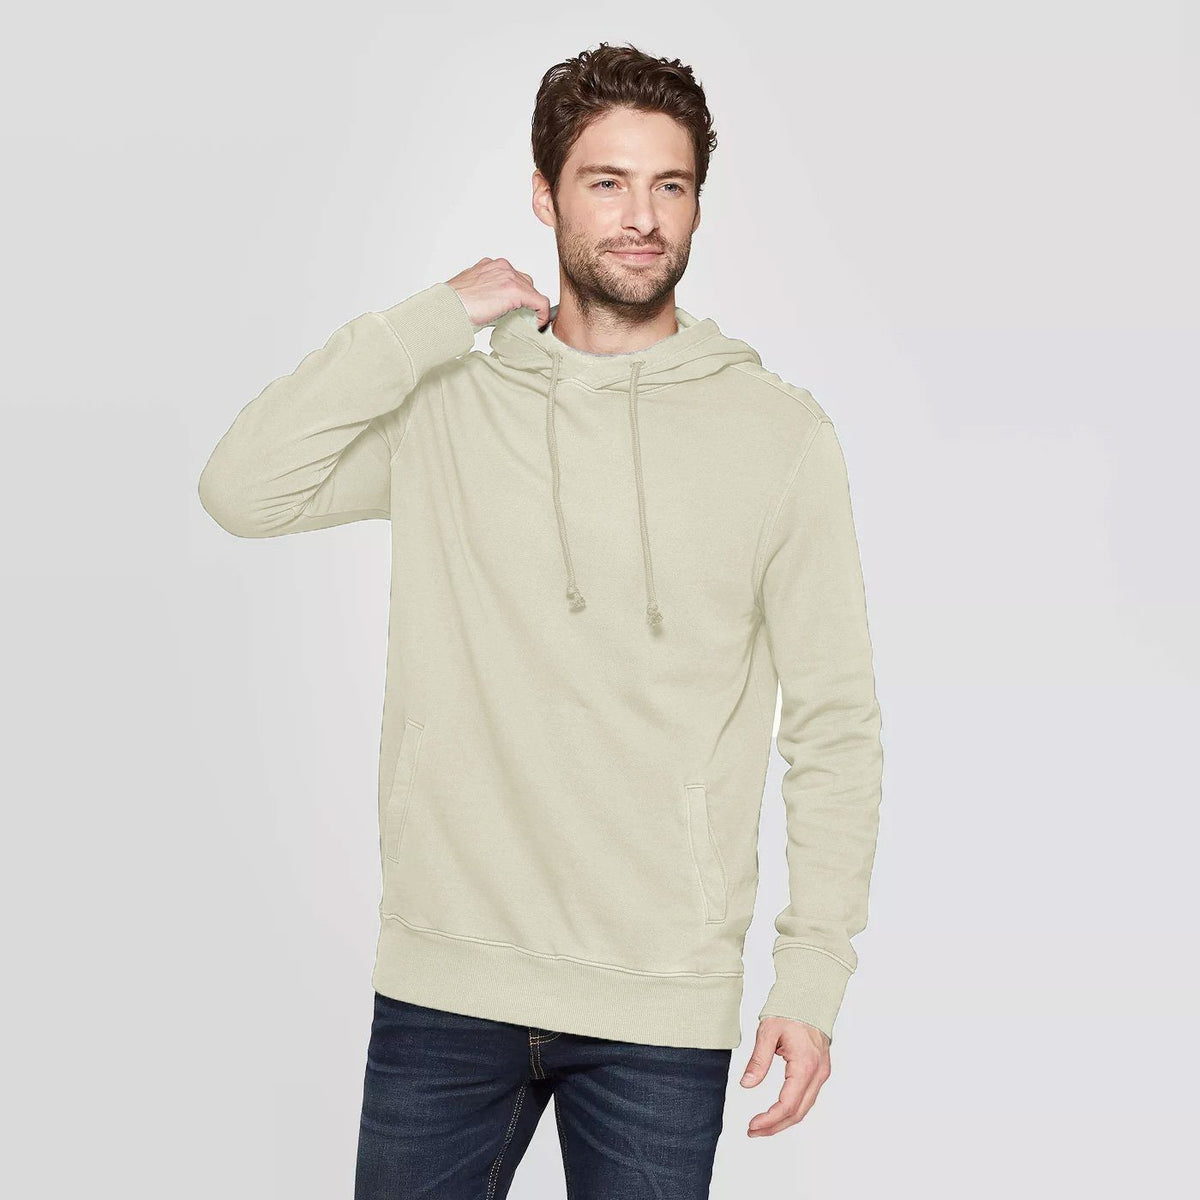 CR Men's 10-16A20 Terry Pullover Hoodie Men's Pullover Hoodie SRK Cream XS